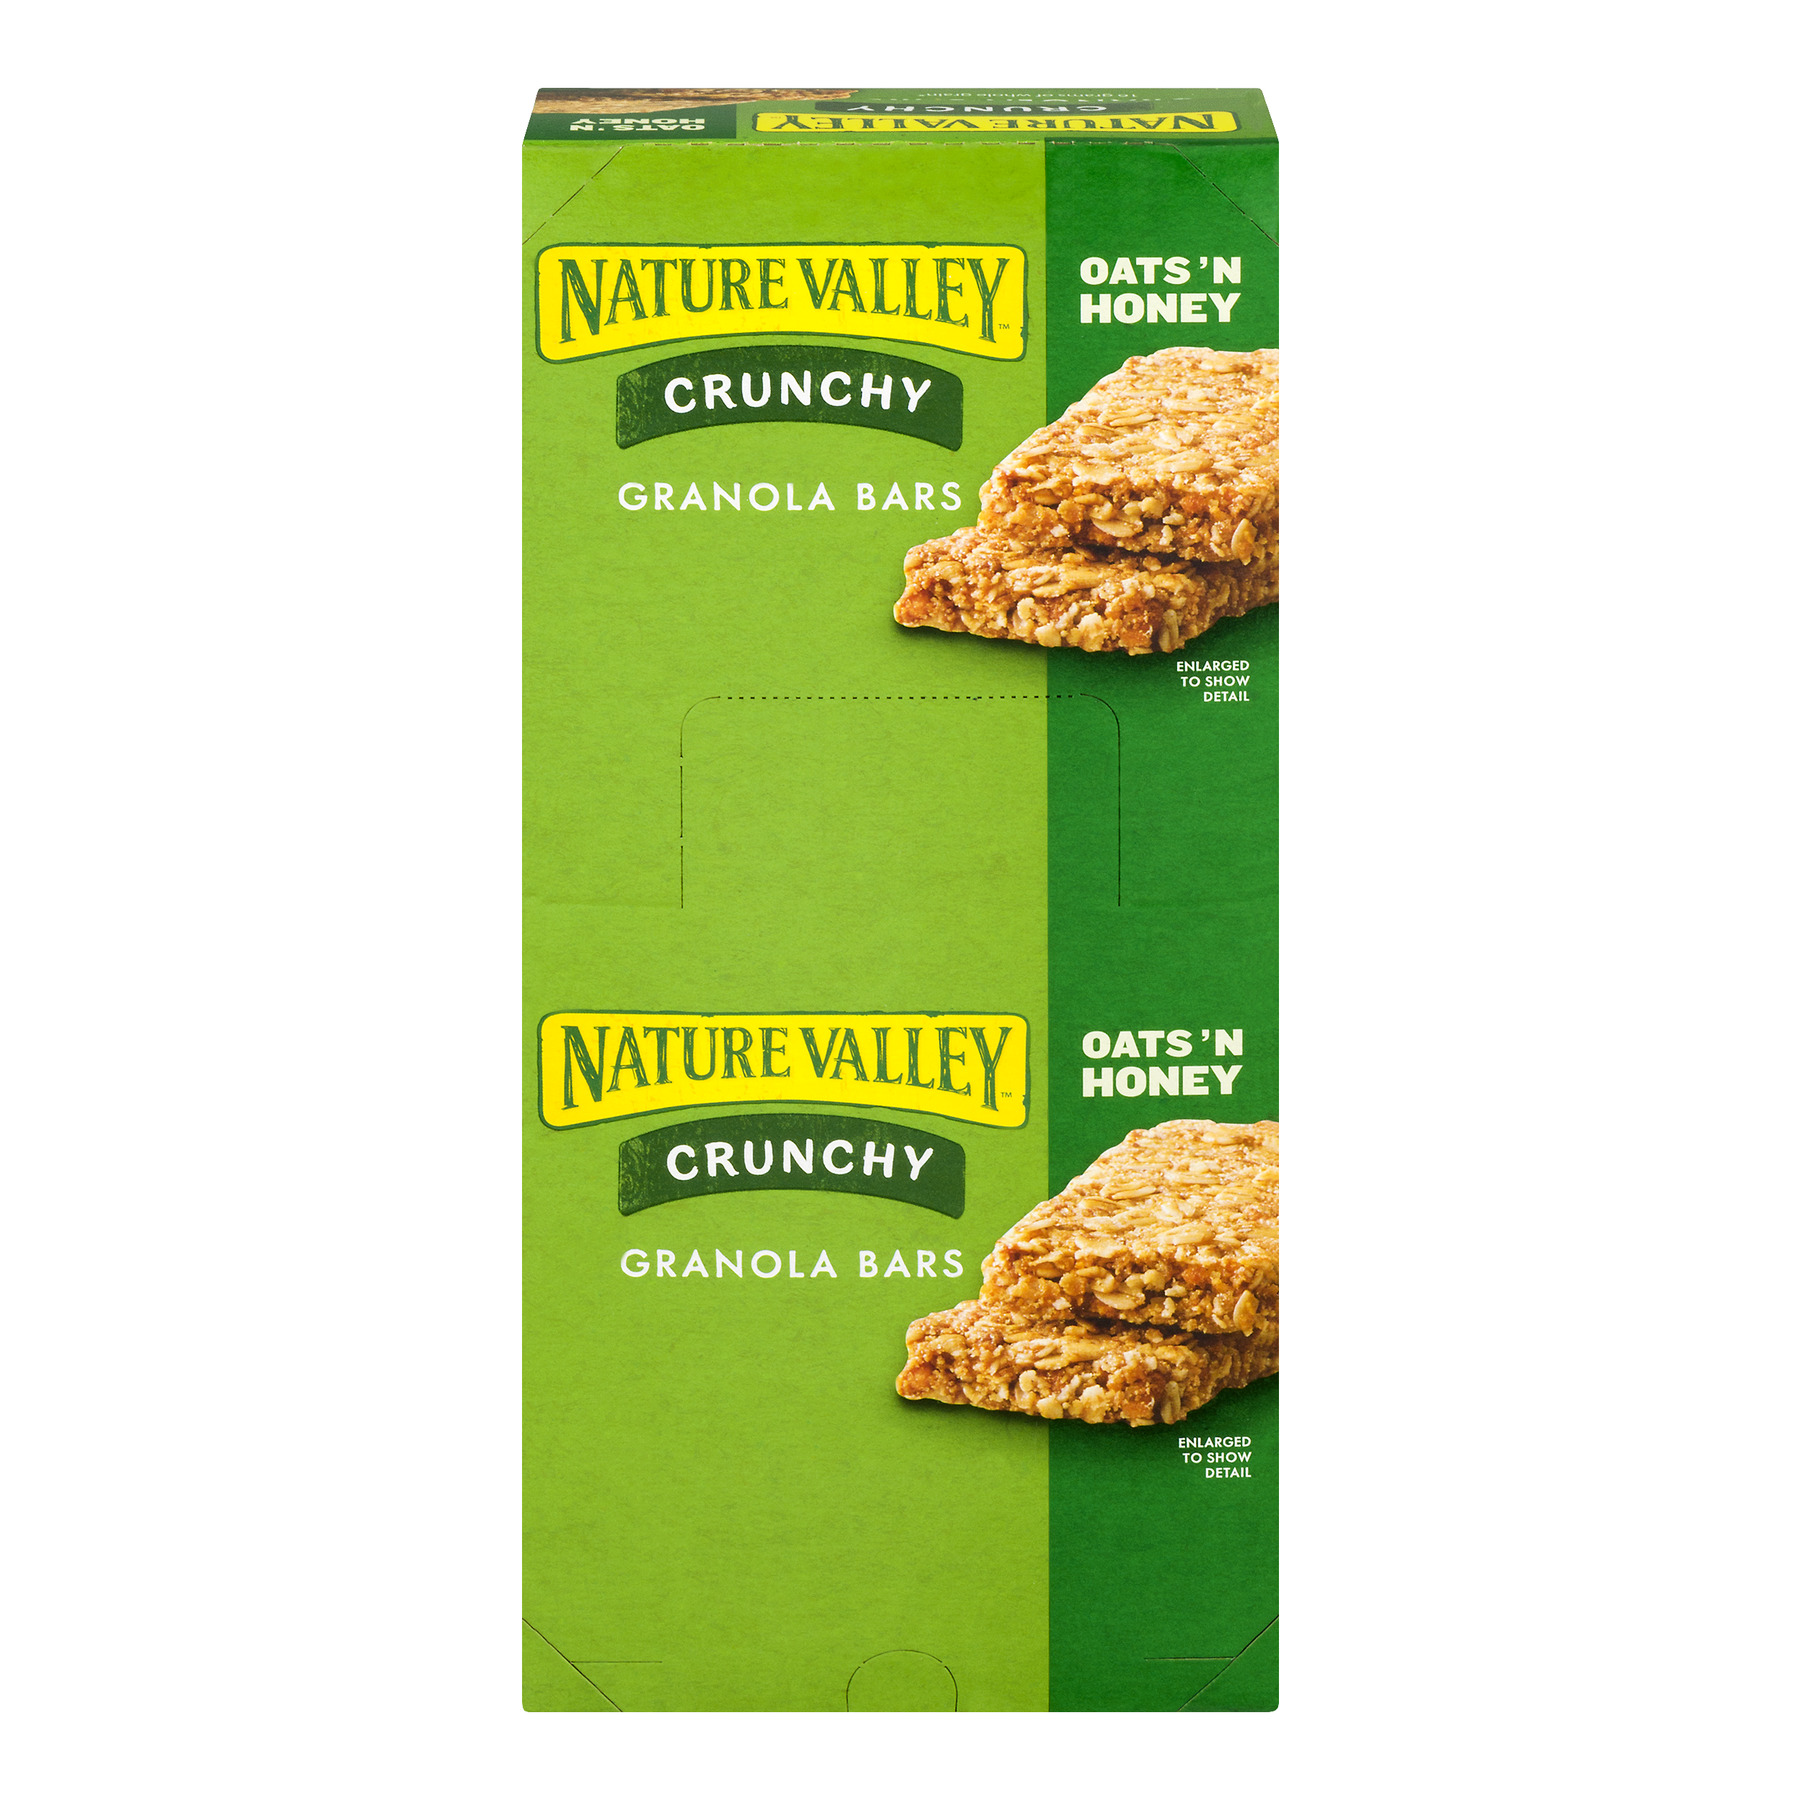 Nature Valley Oats 'N Honey Crunchy Granola Bars, 26.82 oz